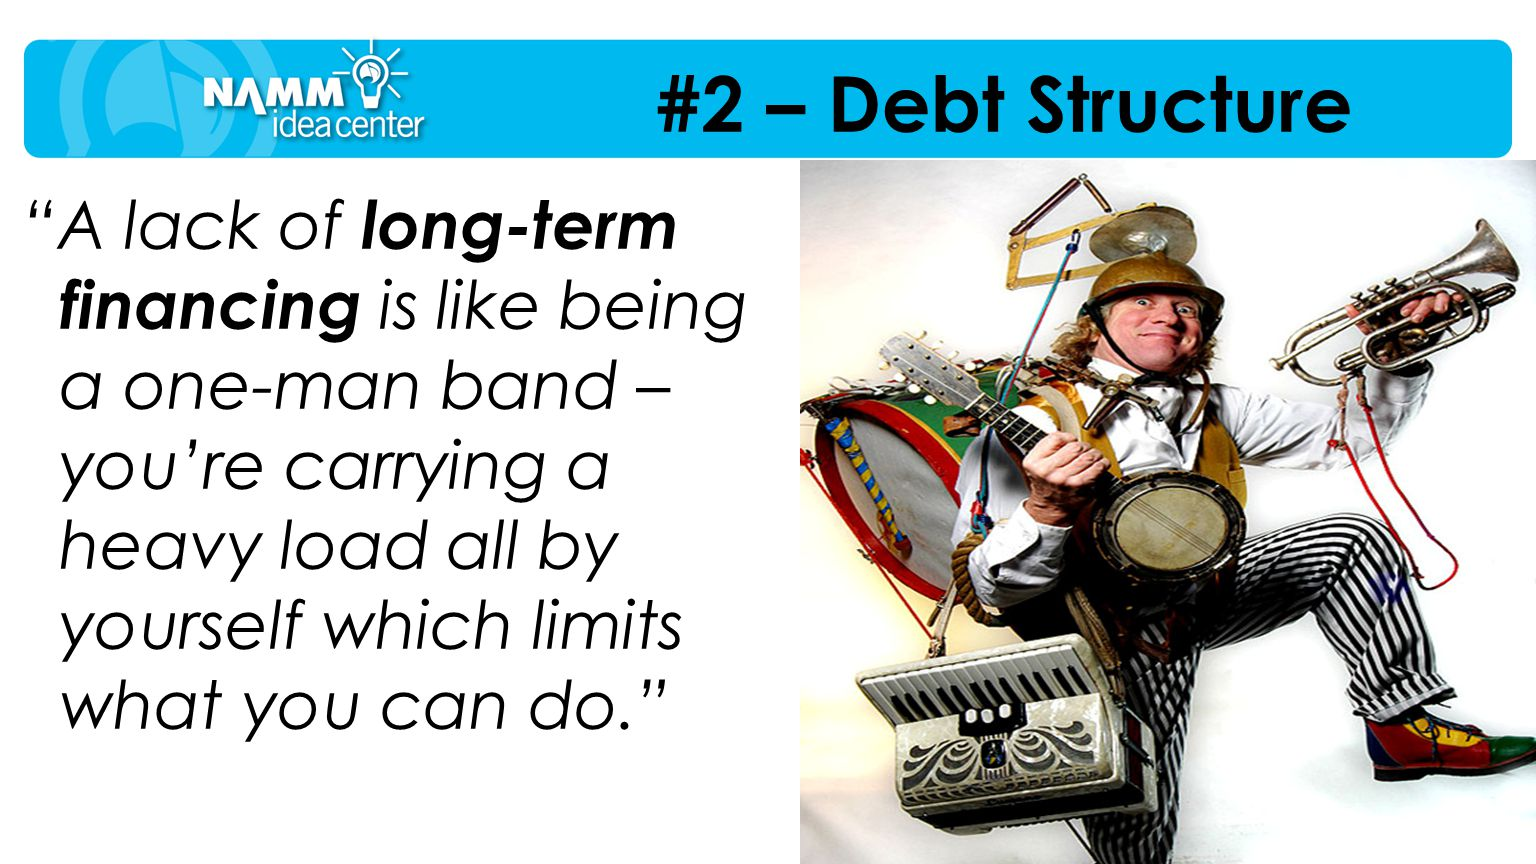 """A lack of long-term financing is like being a one-man band – you're carrying a heavy load all by yourself which limits what you can do."" #2 – Debt St"